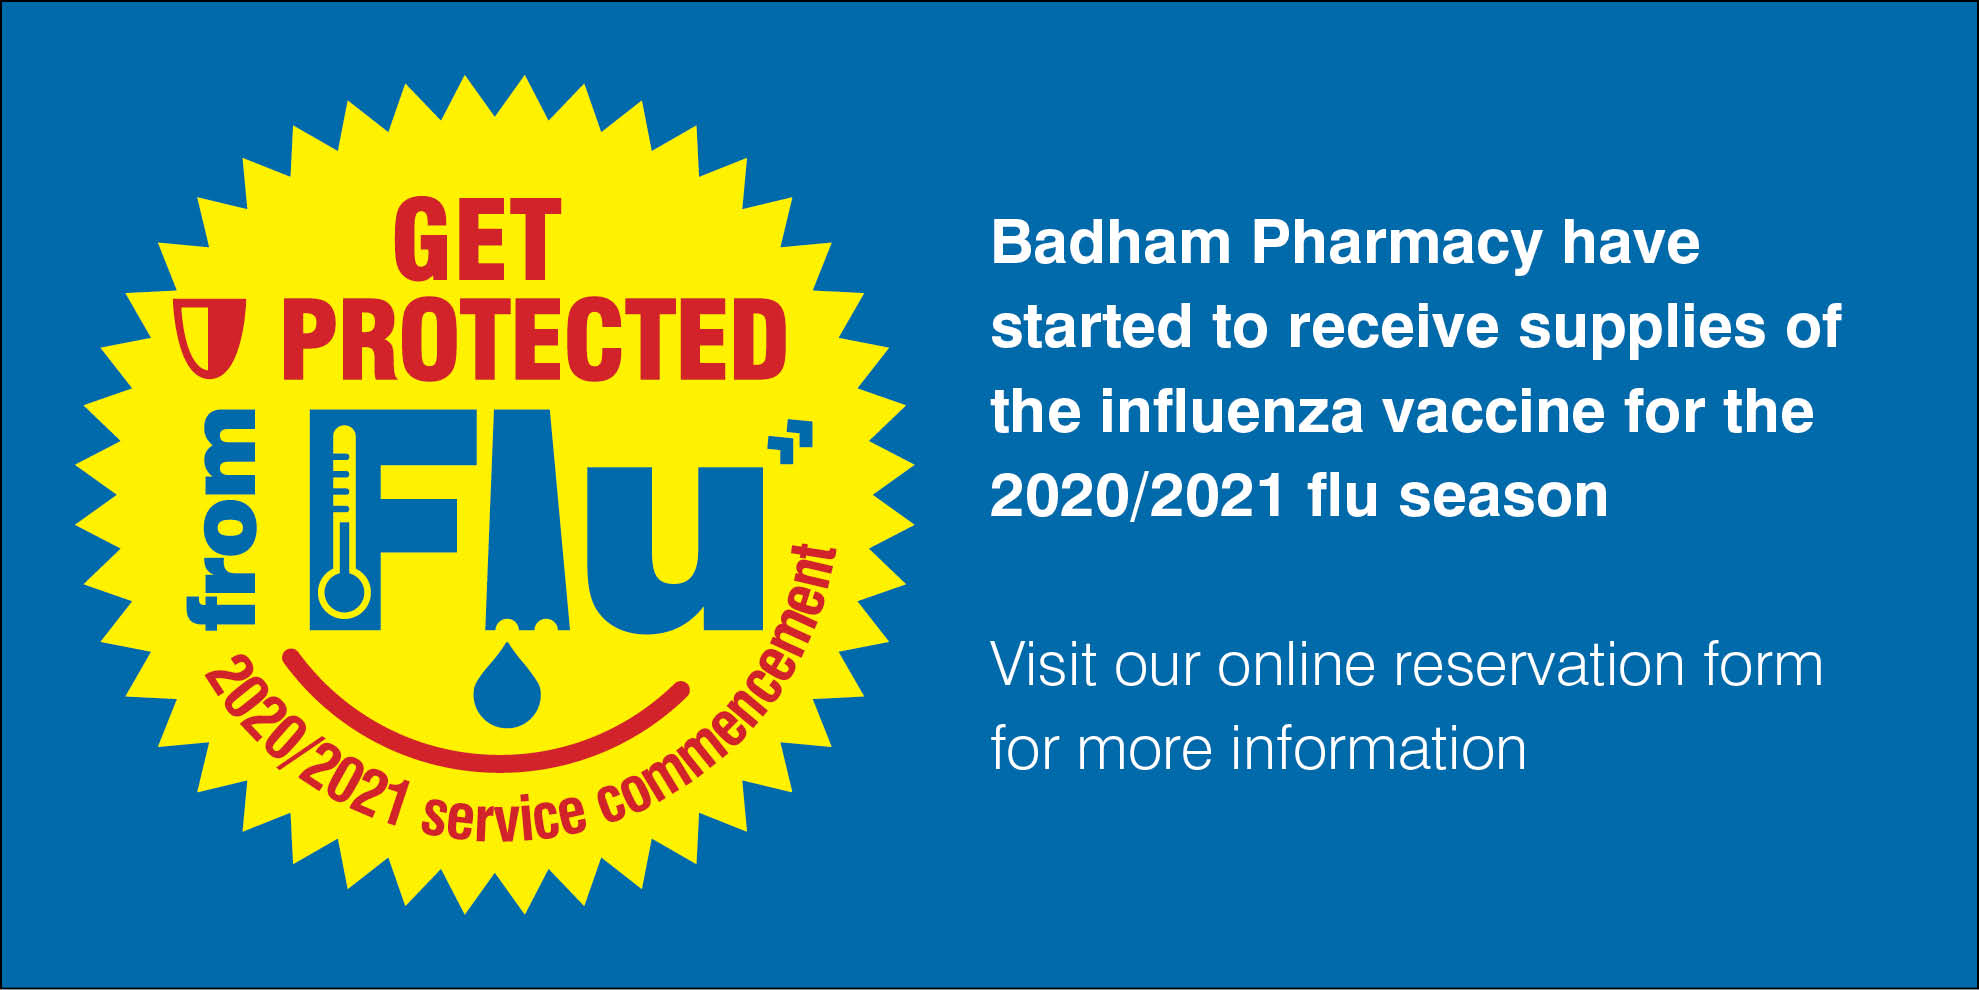 Badham Pharmacy have started to receive supplies of the influenza vaccine for the 2020/2021 flu season. Visit our online reservation form for more information